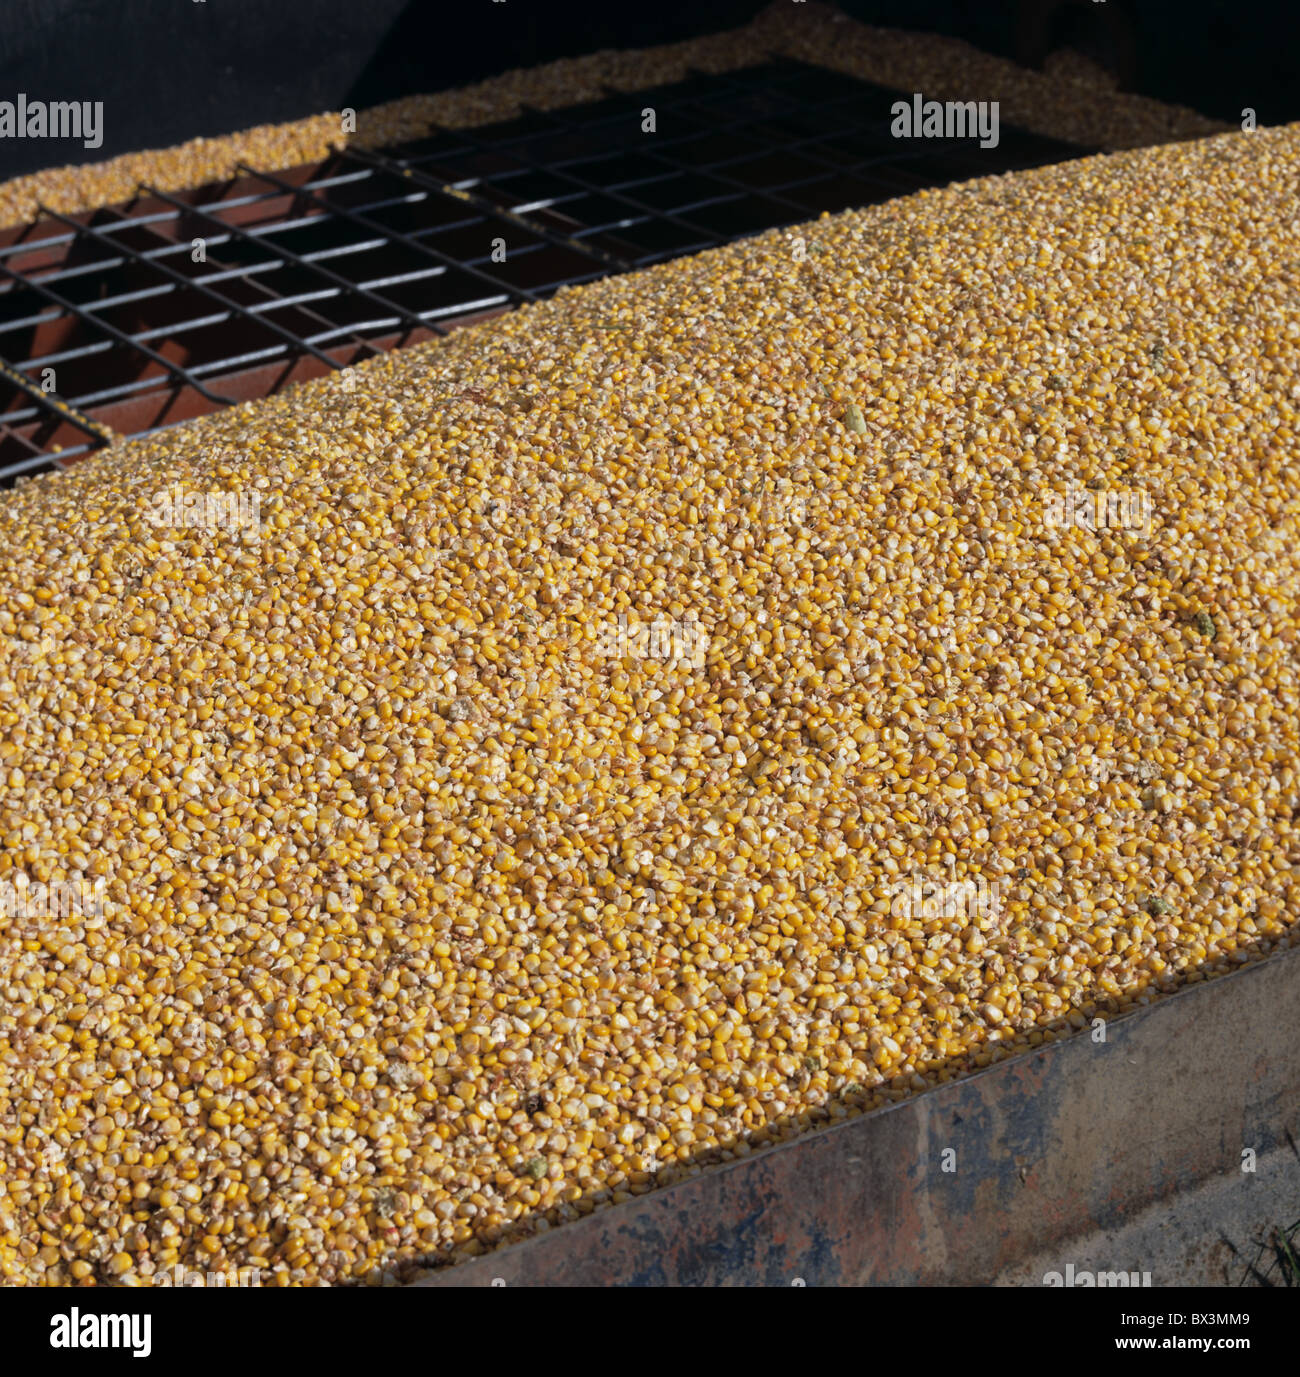 Maize or corn grain in silo hopper from a combined crop for animal feed - Stock Image